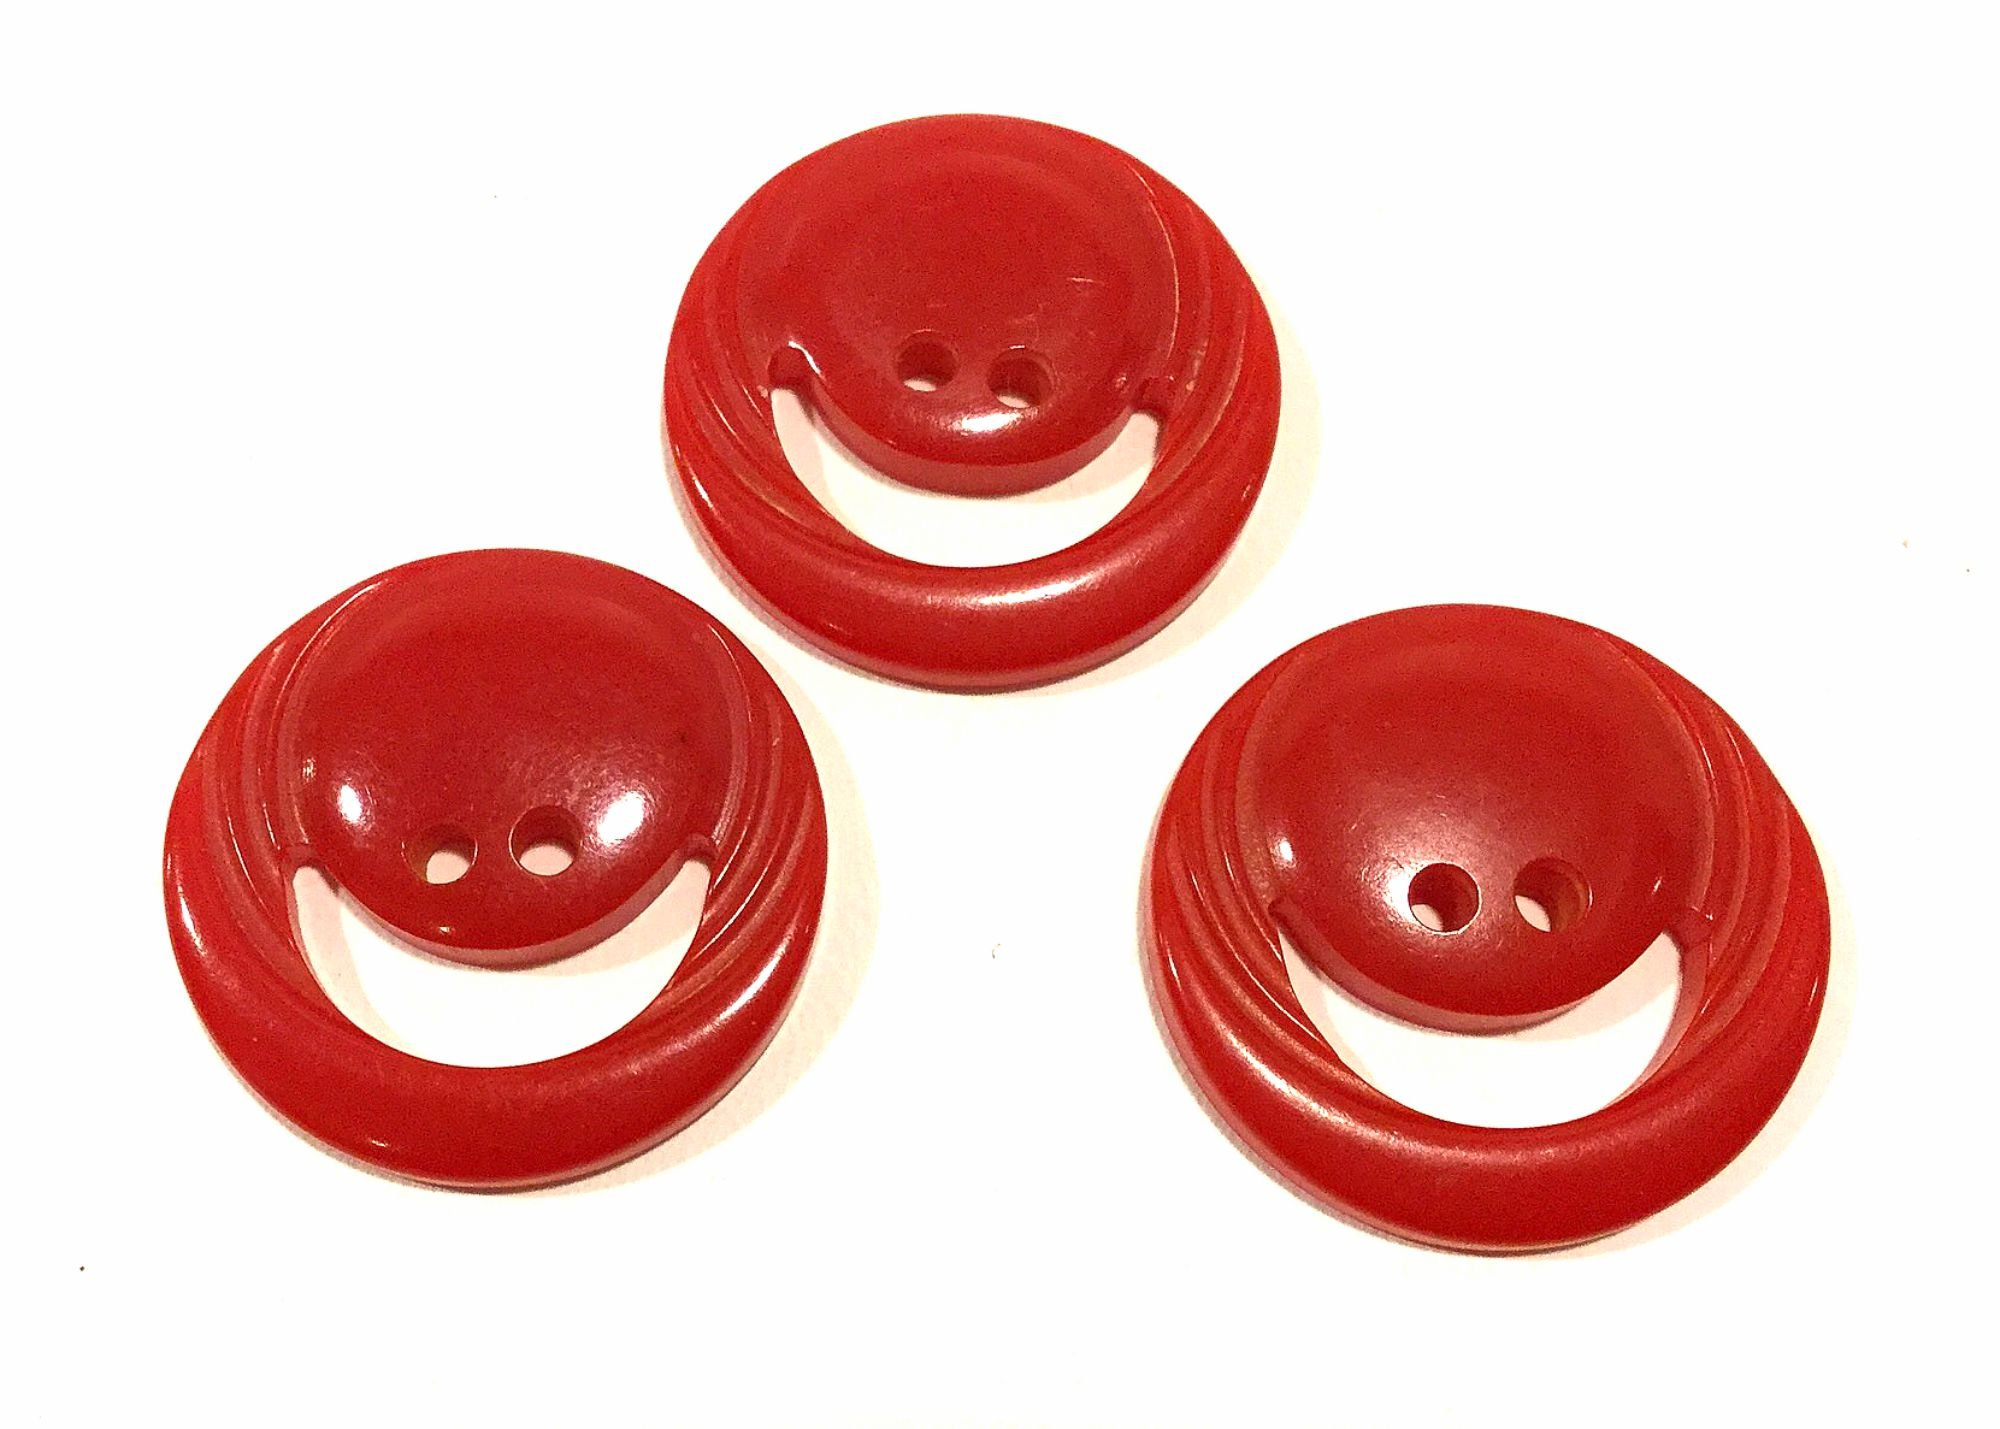 Lot of THREE Old Vintage BAKELITE Carved Red Smiley Face Sewing Buttons VBL305